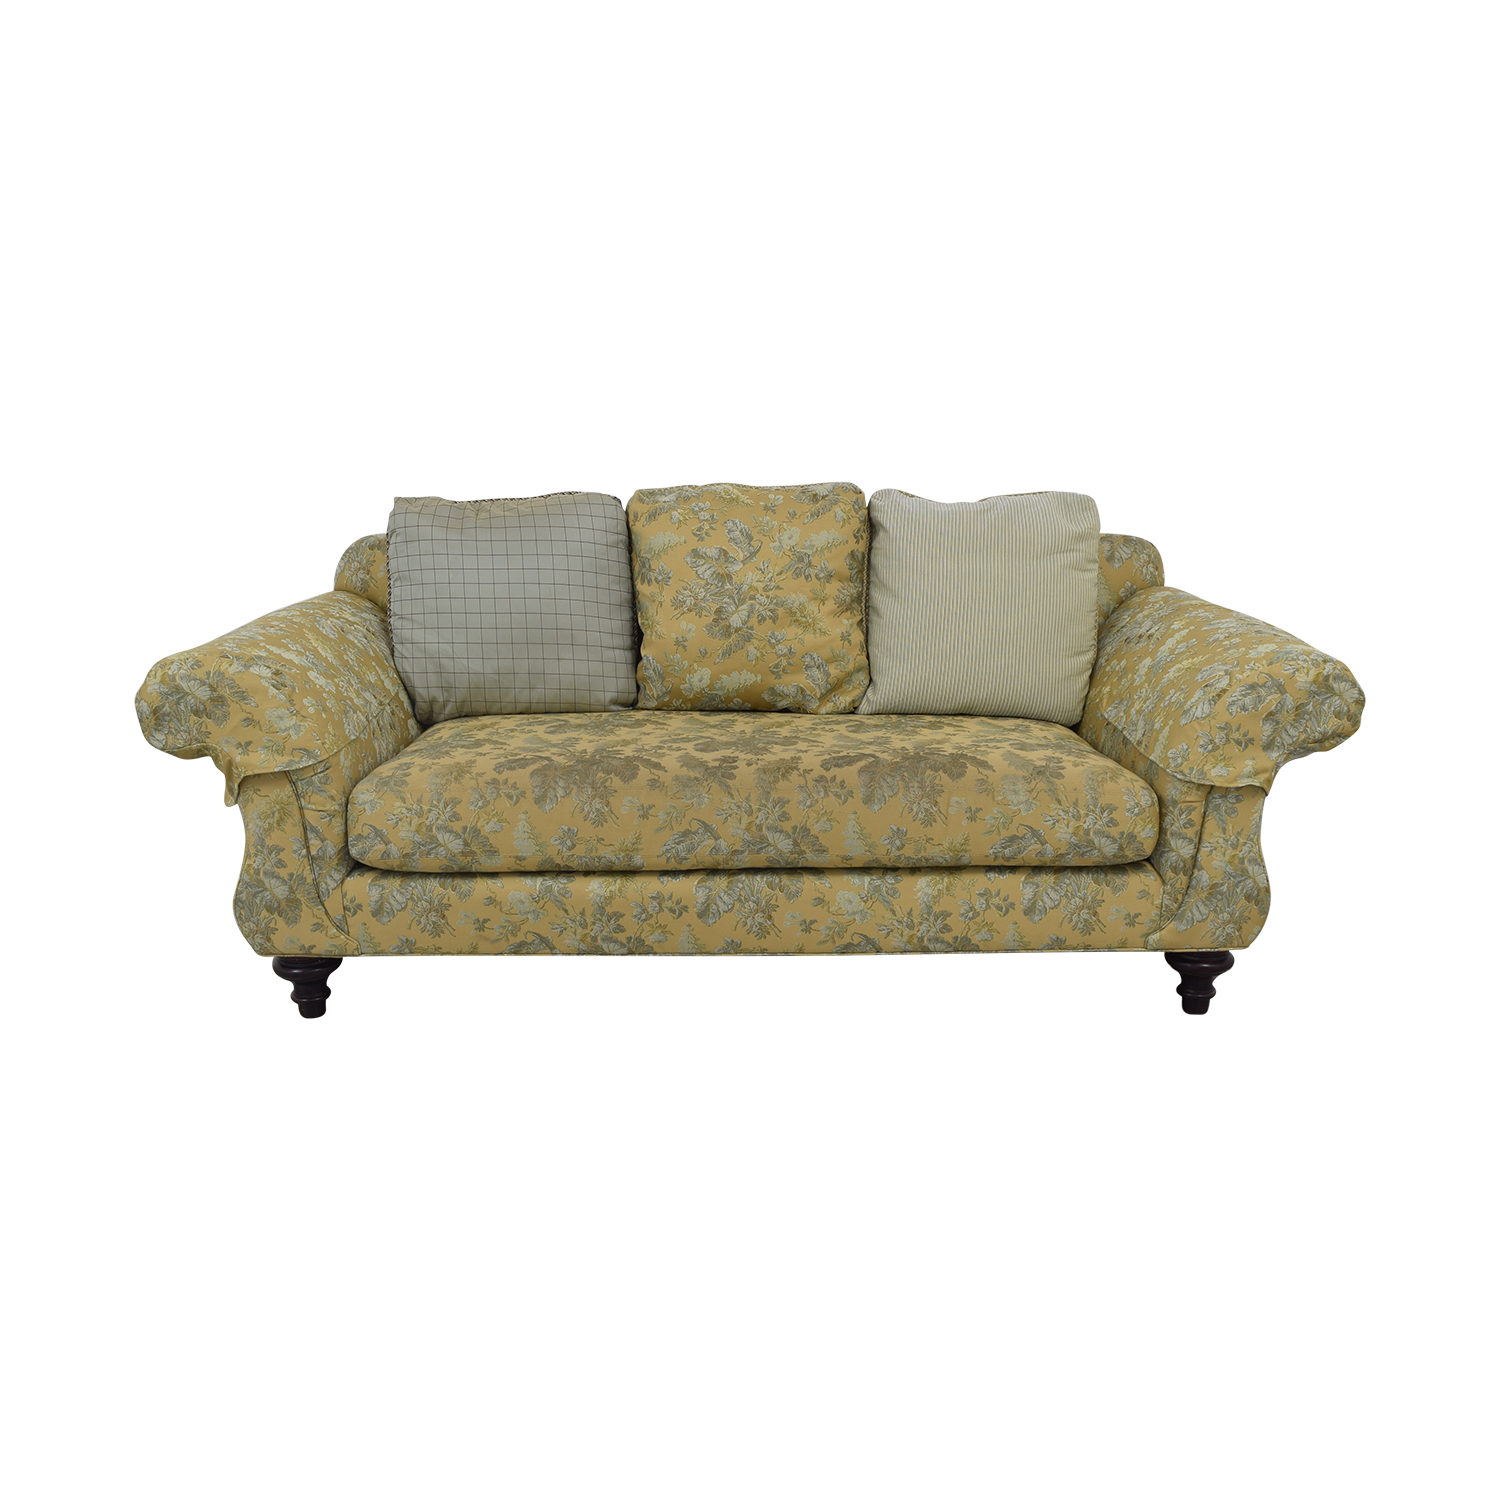 Vanguard Furniture Vanguard Furniture Sofa with Down-Filled Pillows Classic Sofas